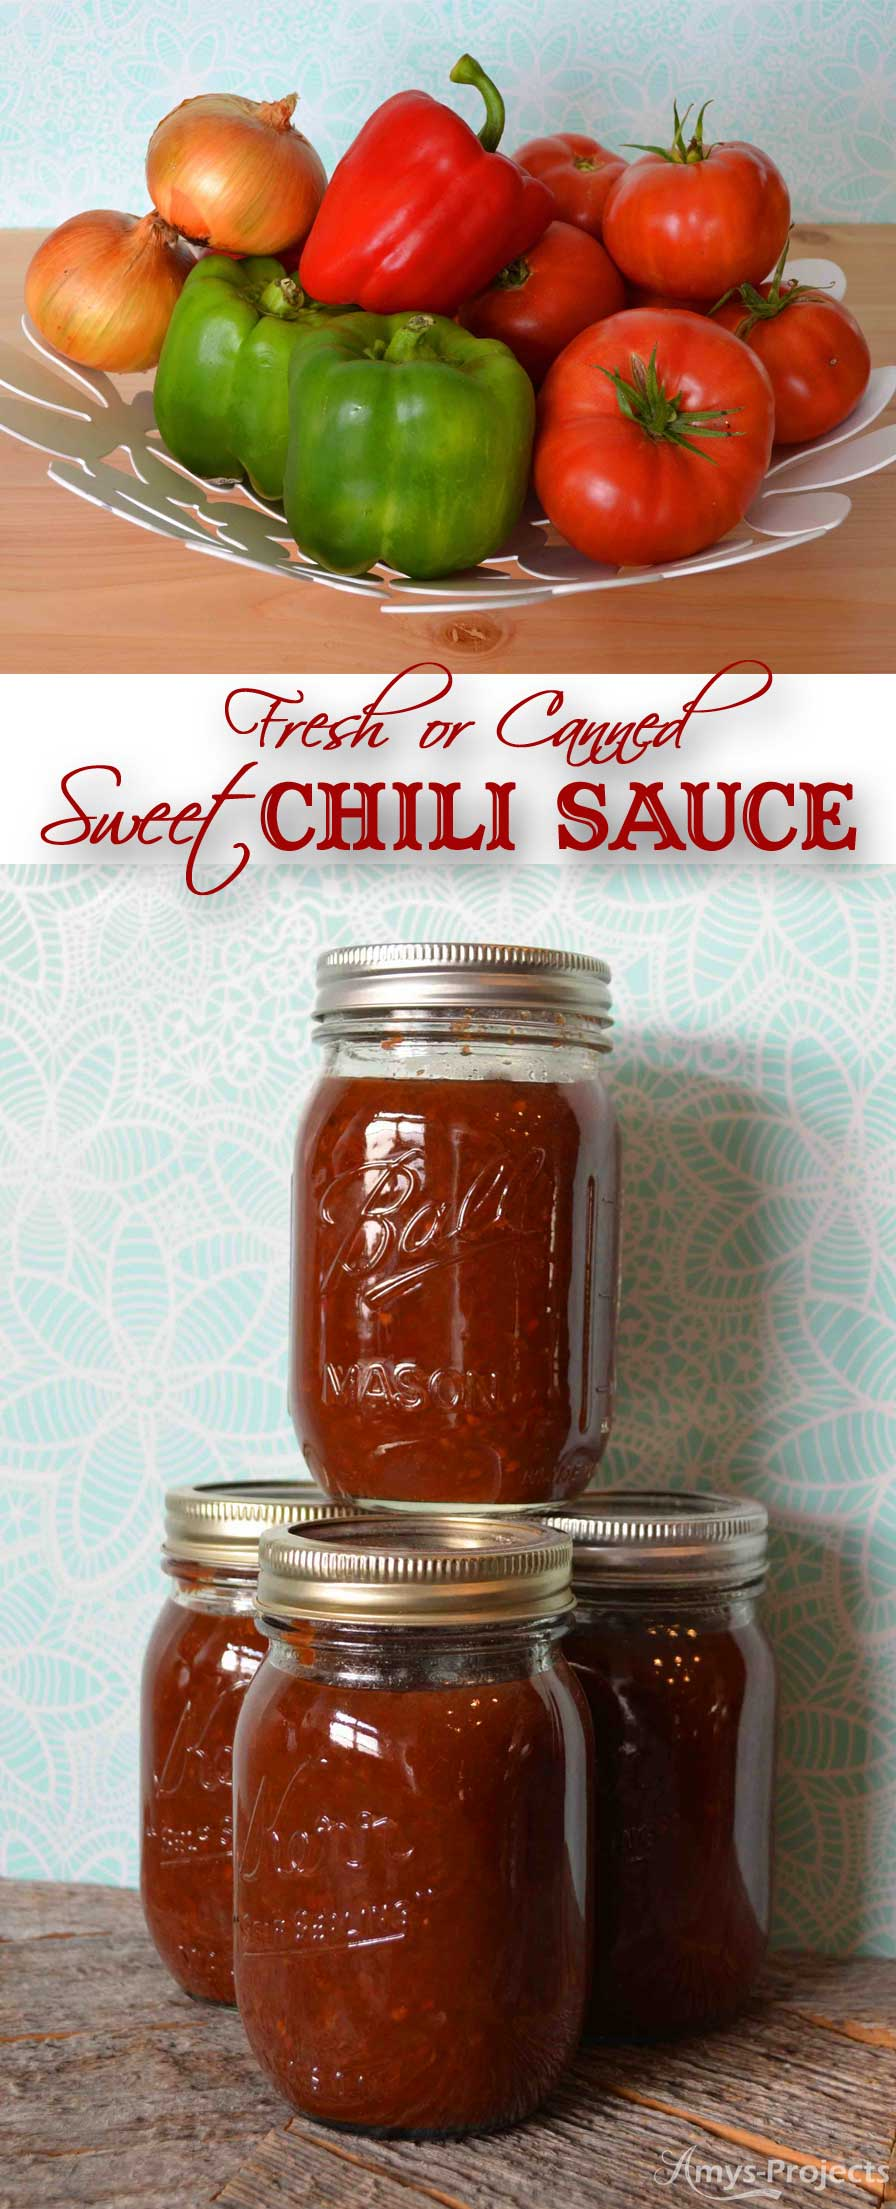 recipes with canned chili